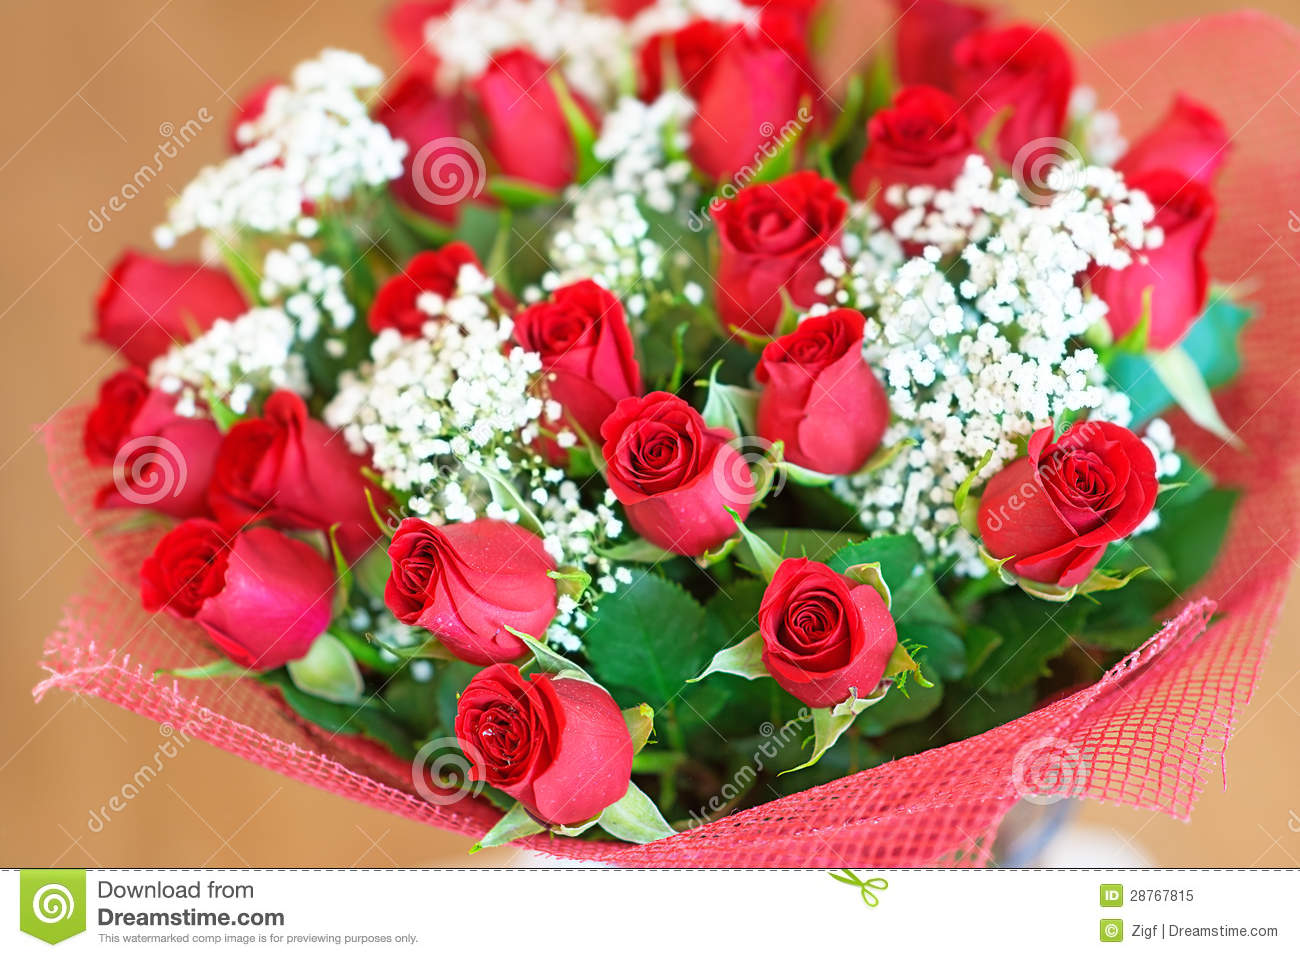 Bouquet des roses rouges image stock image du glorieux for Bouquets de roses